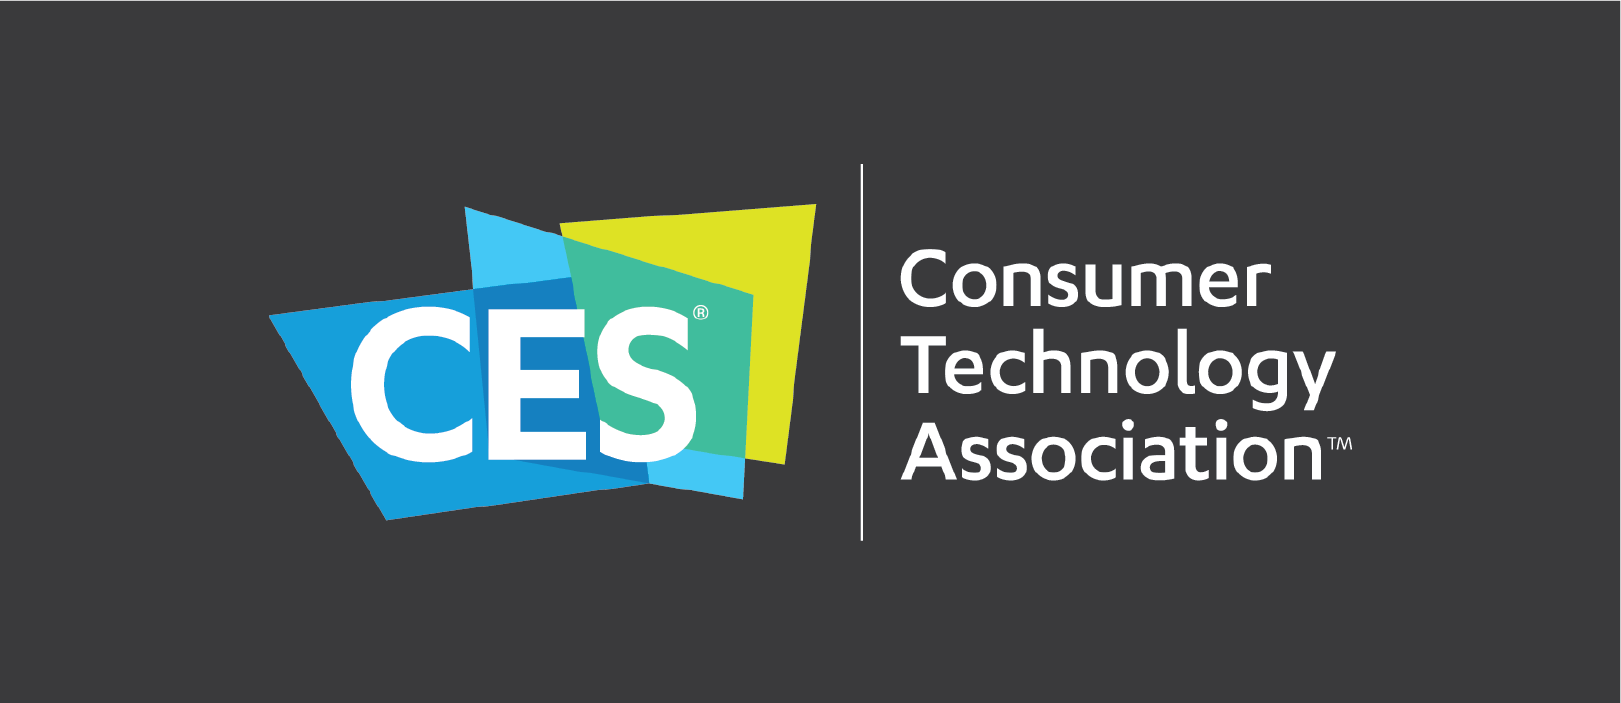 CES UPCOMING EVENT